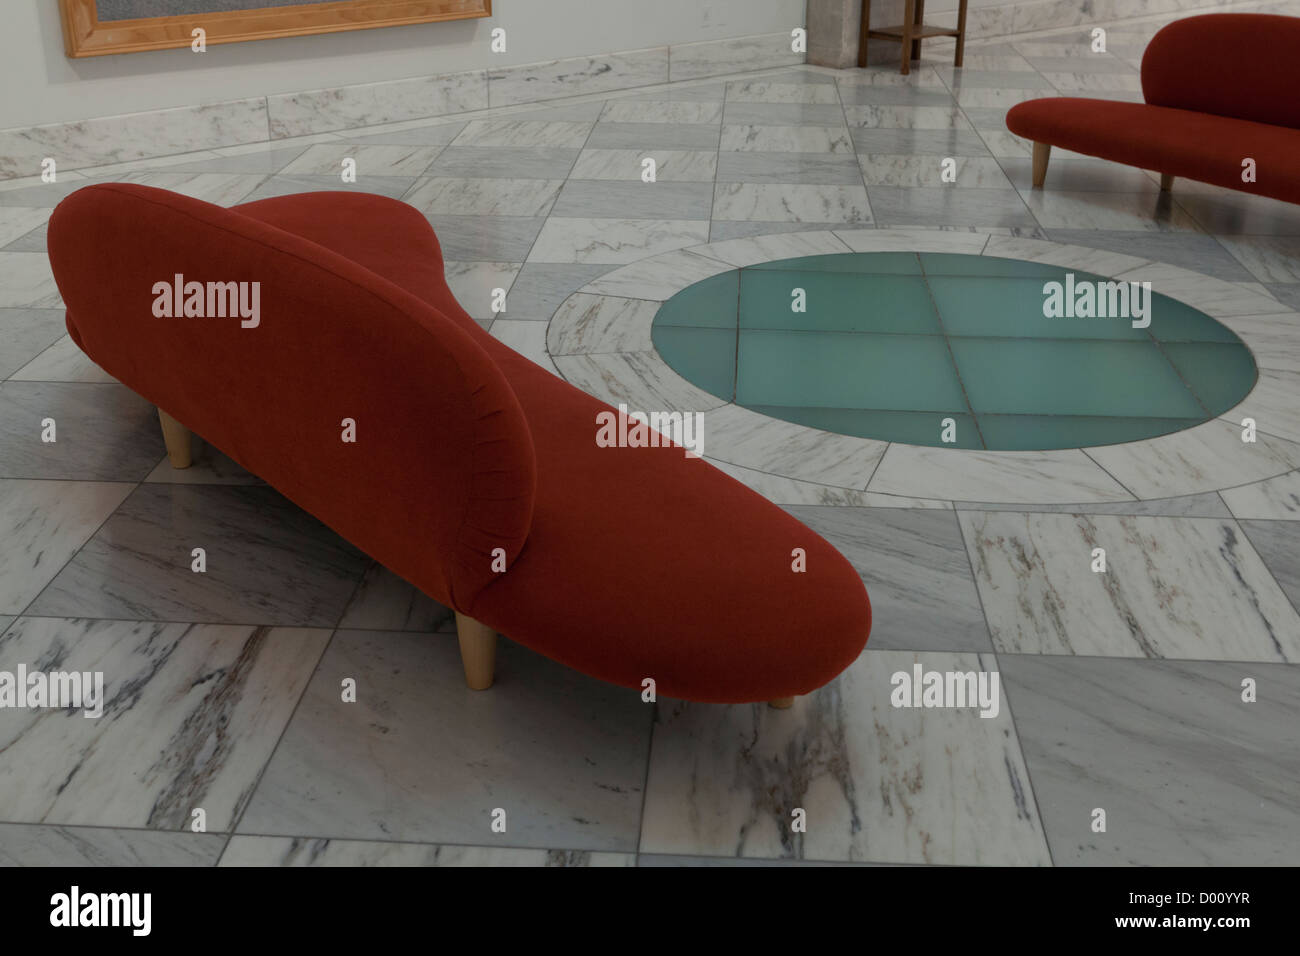 Contemporary seating design in lobby - Stock Image